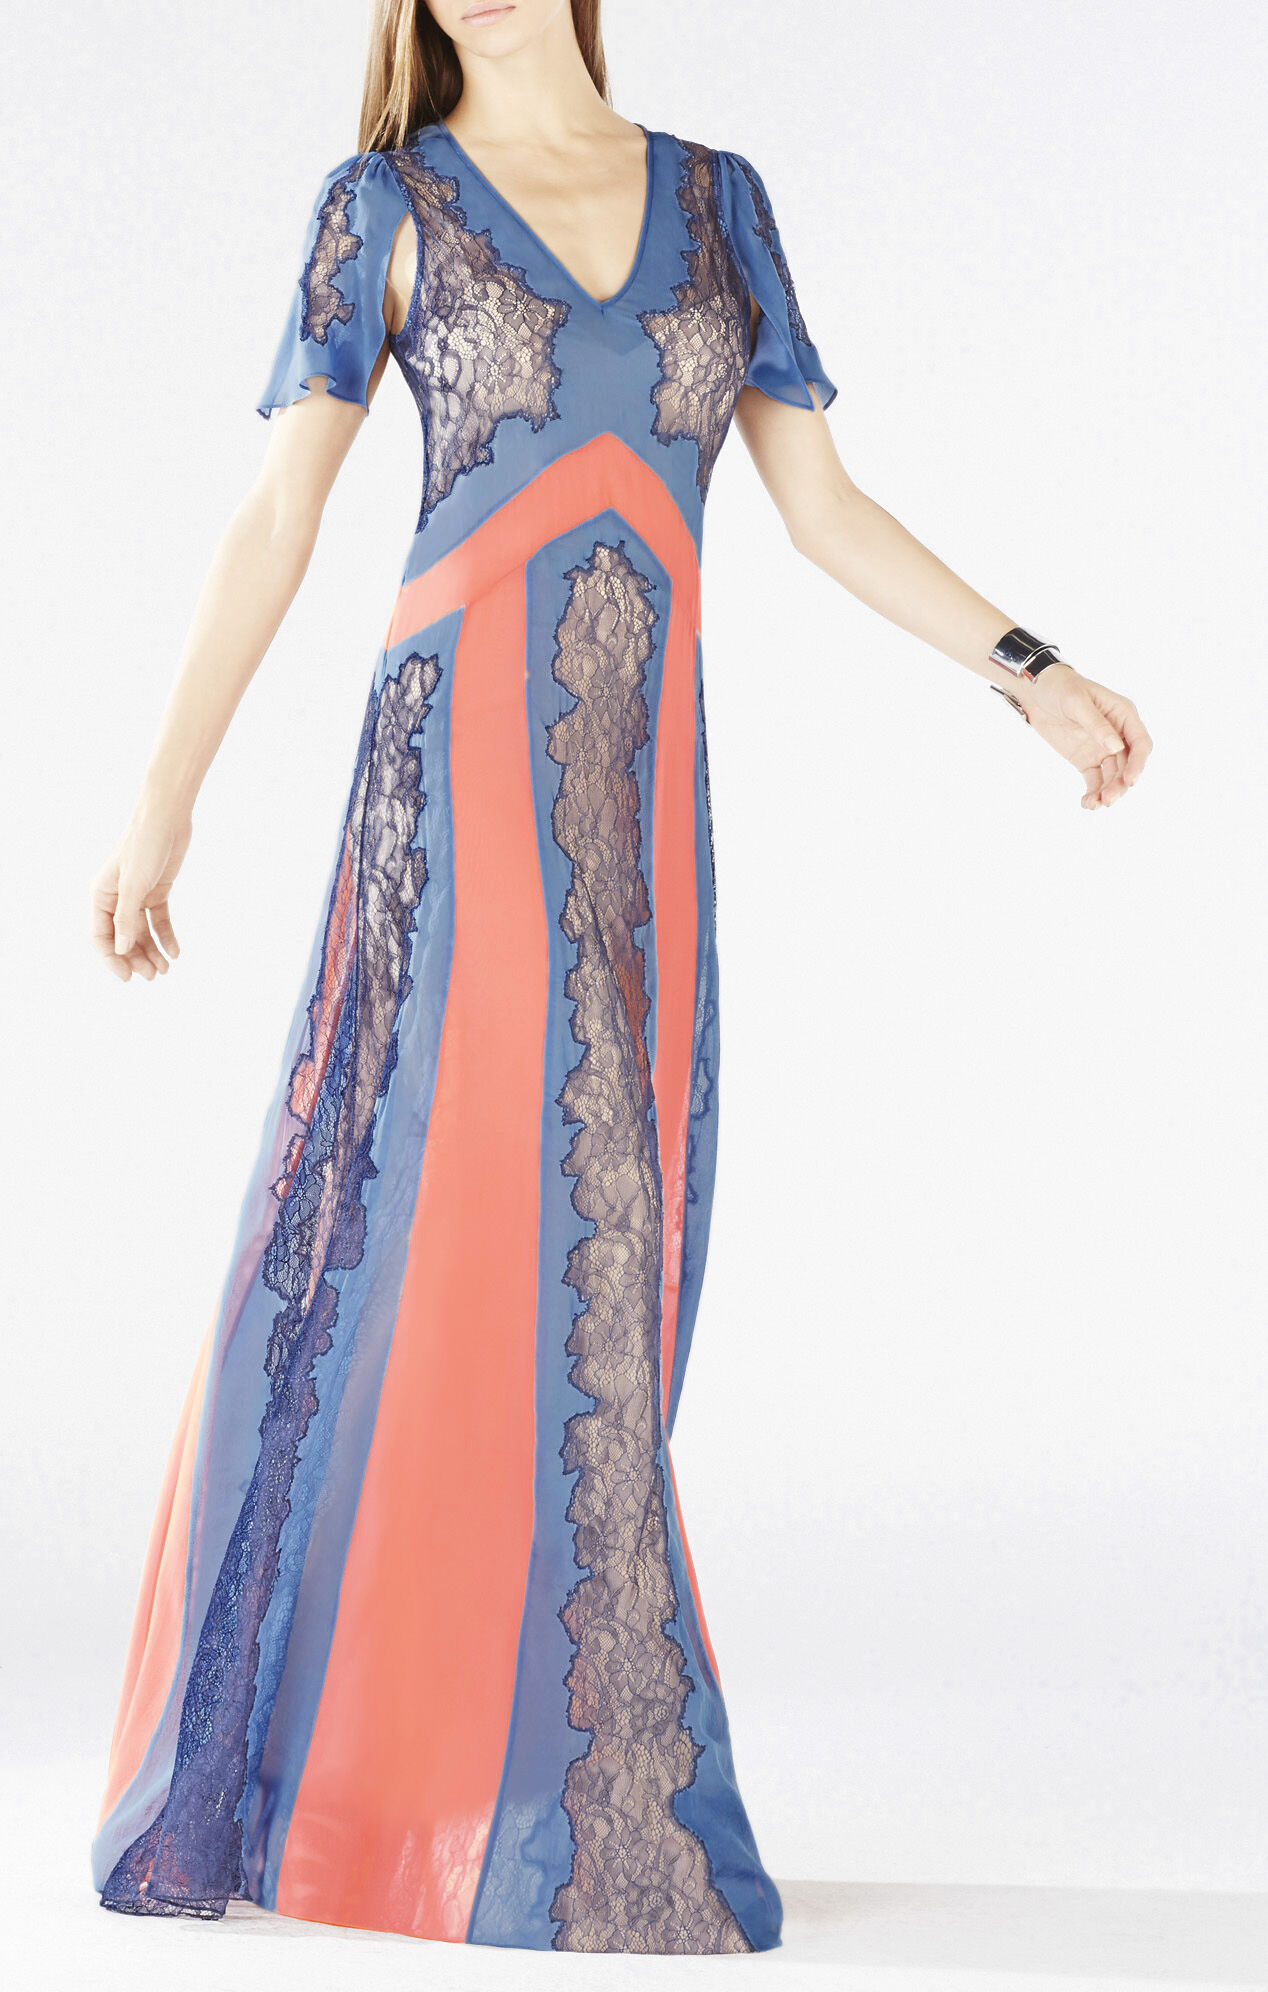 Lorelie Color-Blocked Lace Dress